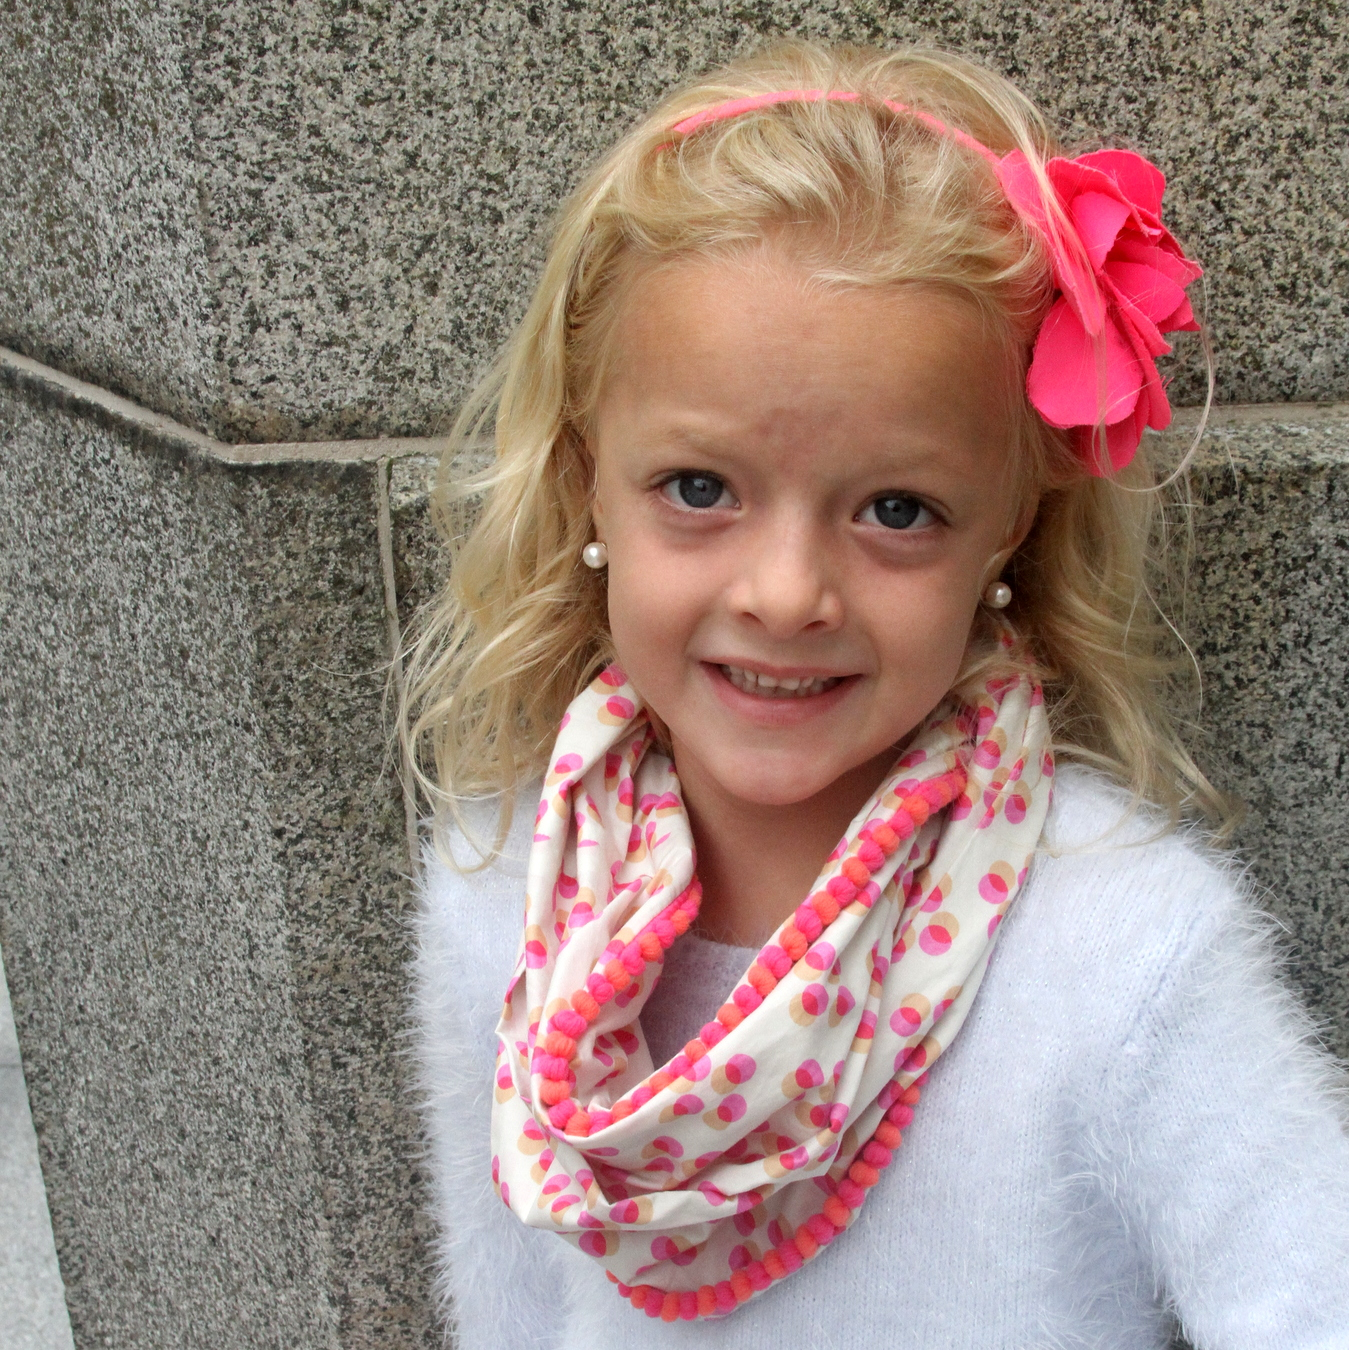 DIY kids' infinity scarf with pom pom trim